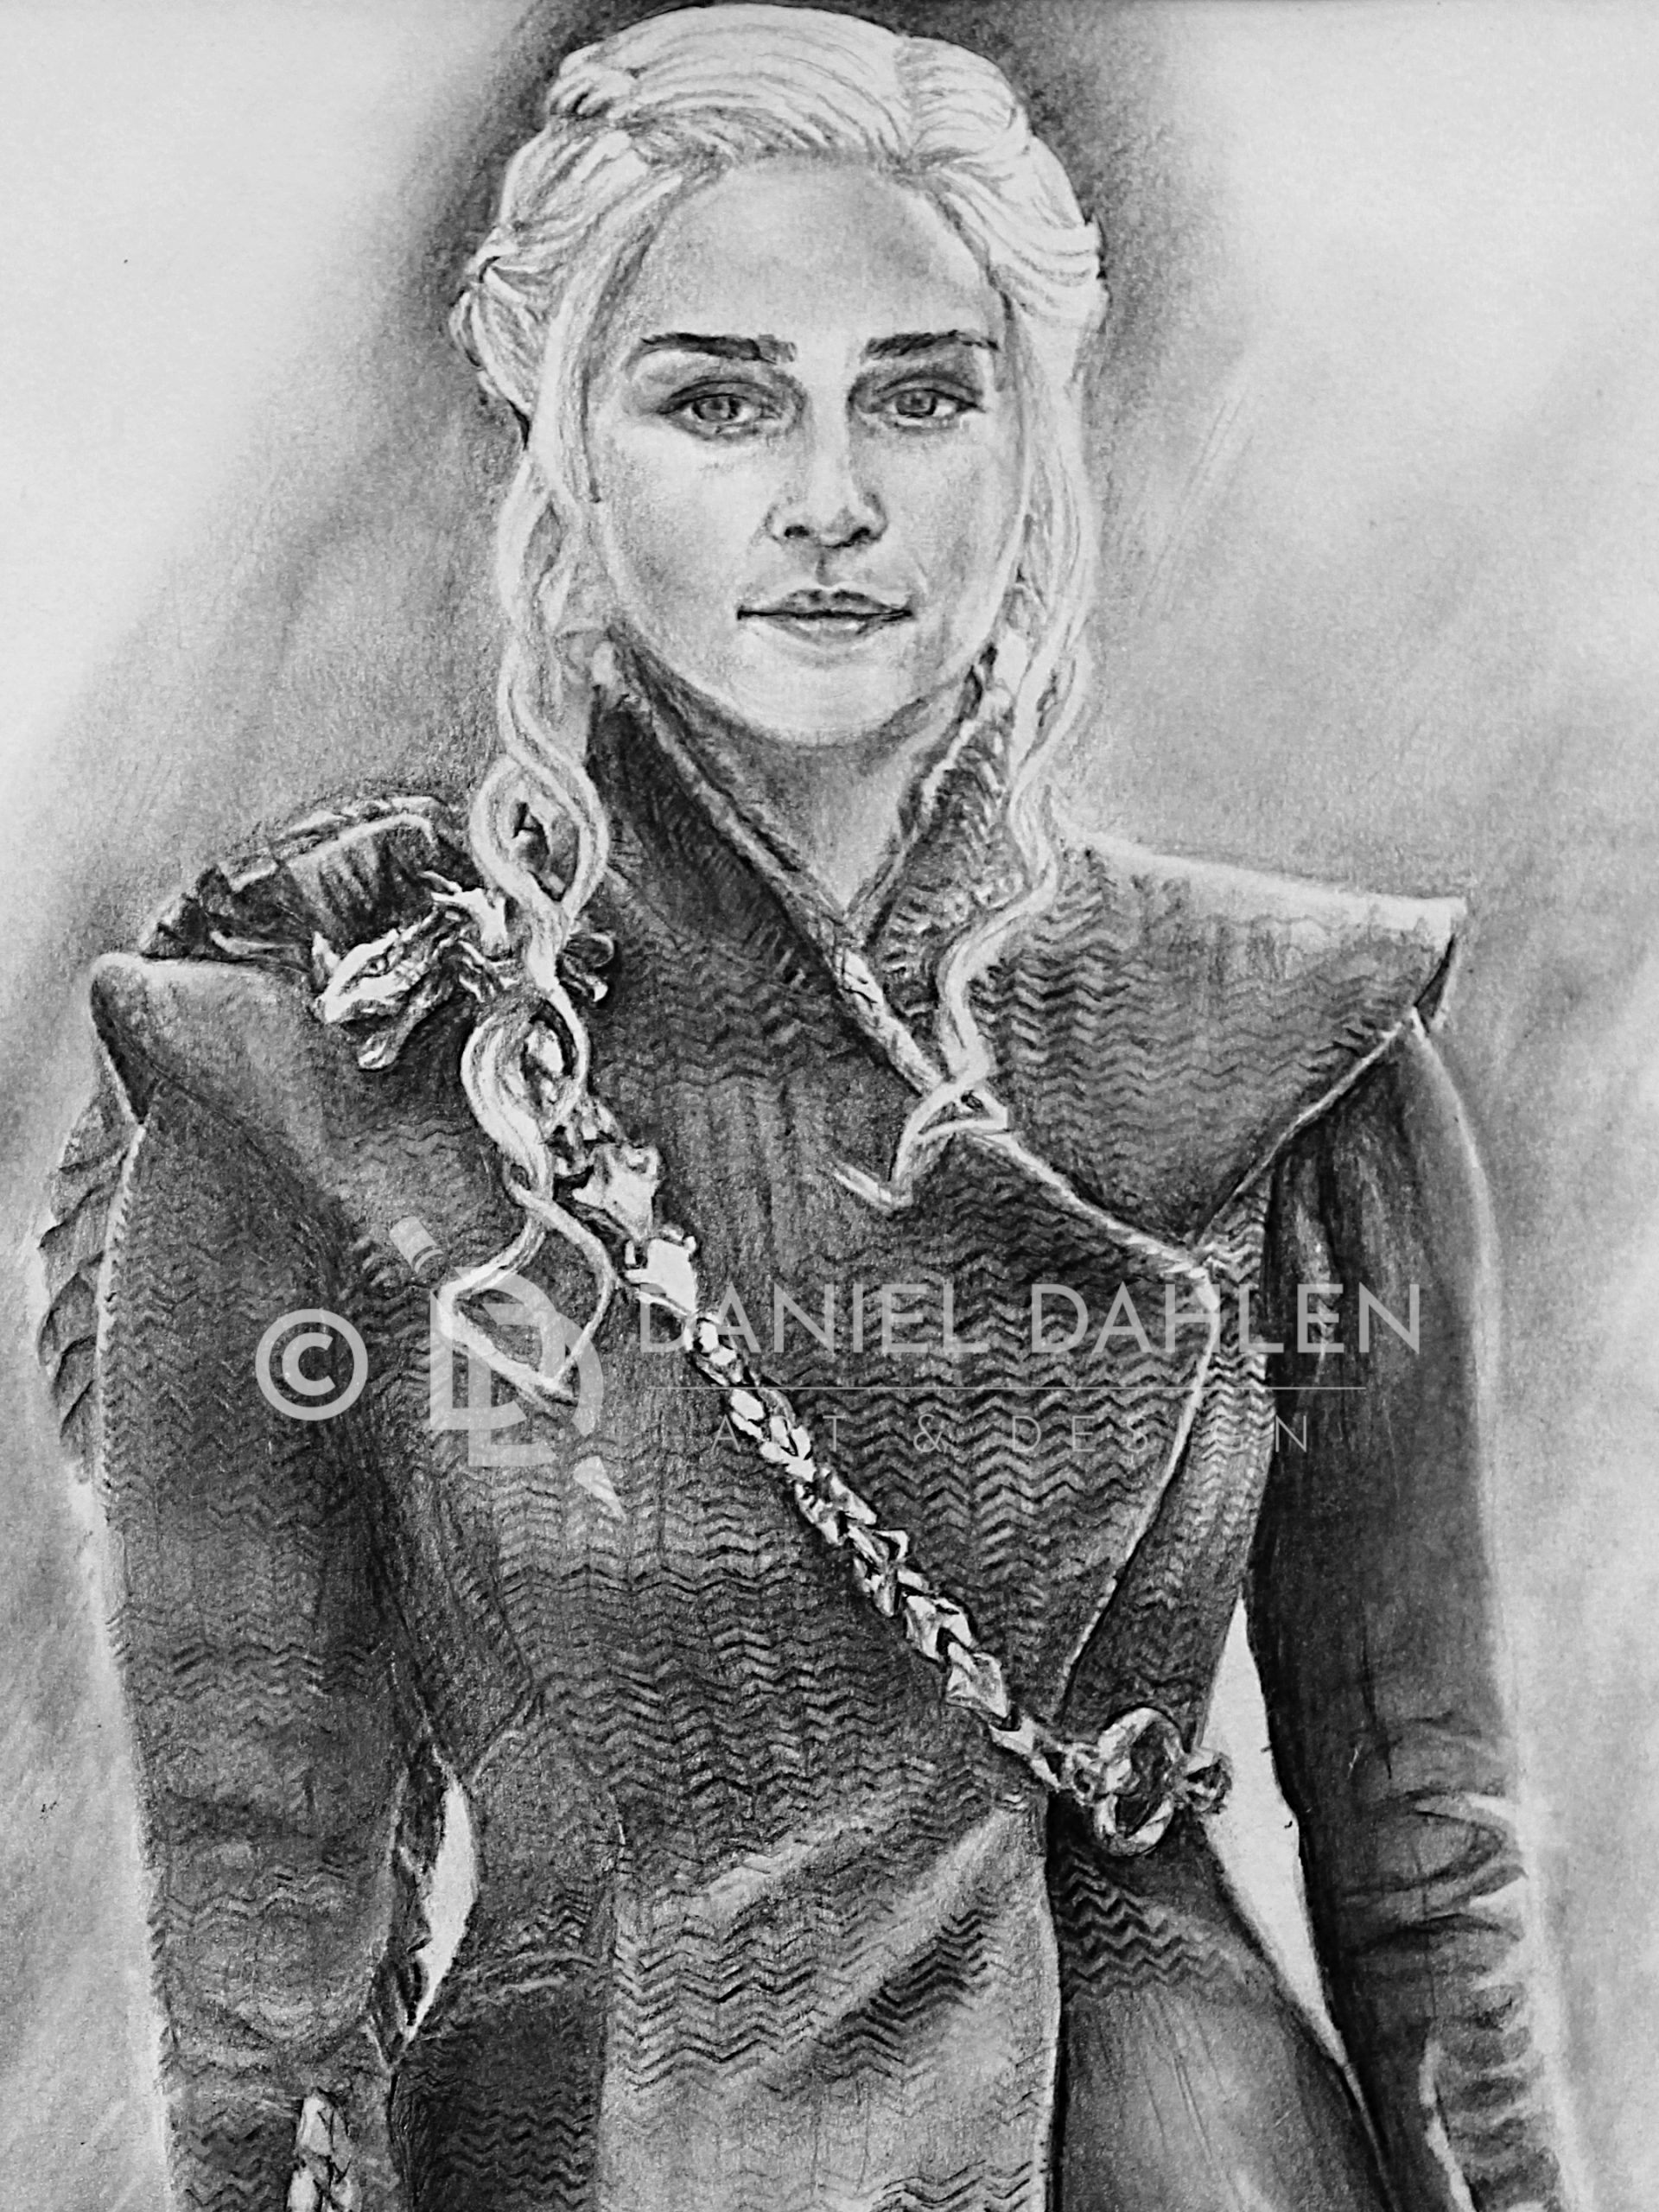 Stormborn Hand Drawn Graphite Drawing